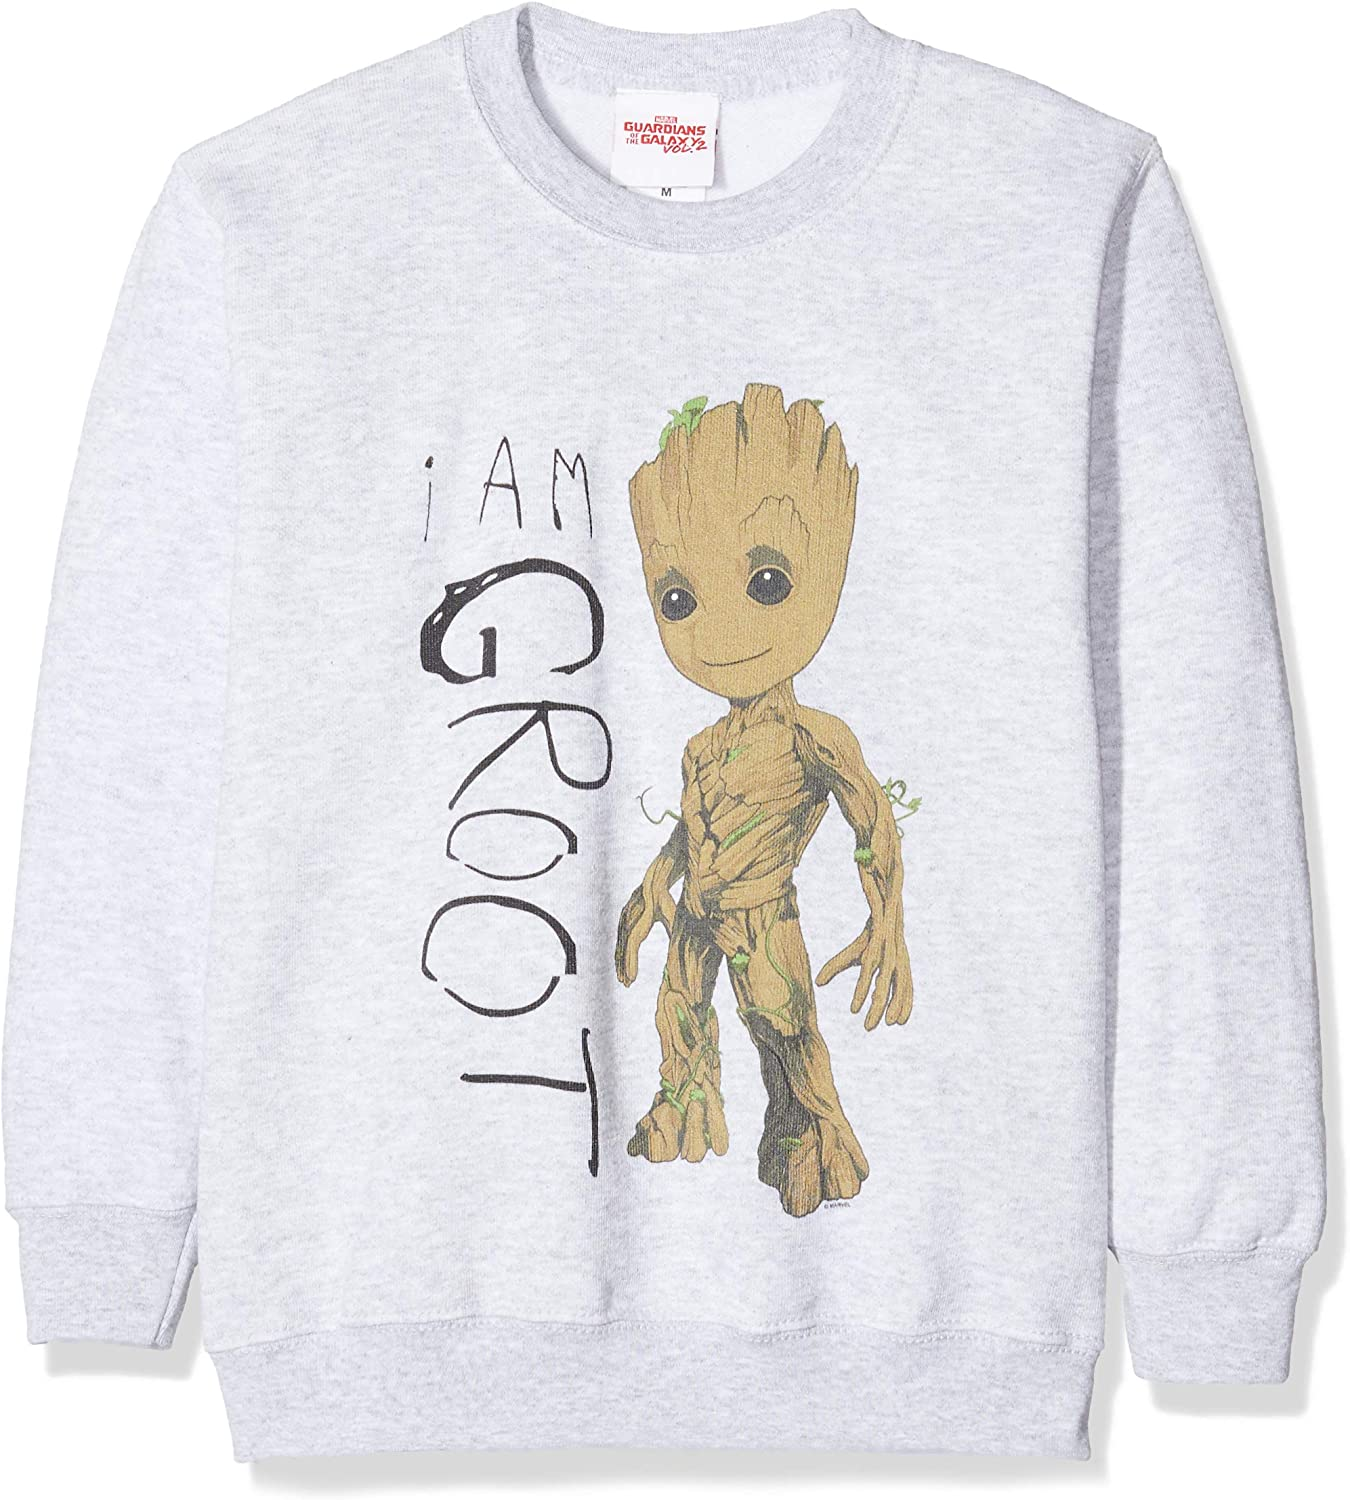 Grey 12-13 Years Sports Grey SpGry Size:12-13Y MARVEL Girls Guardians of The Galaxy Vol.2 I Am Groot Scribbles T-Shirt